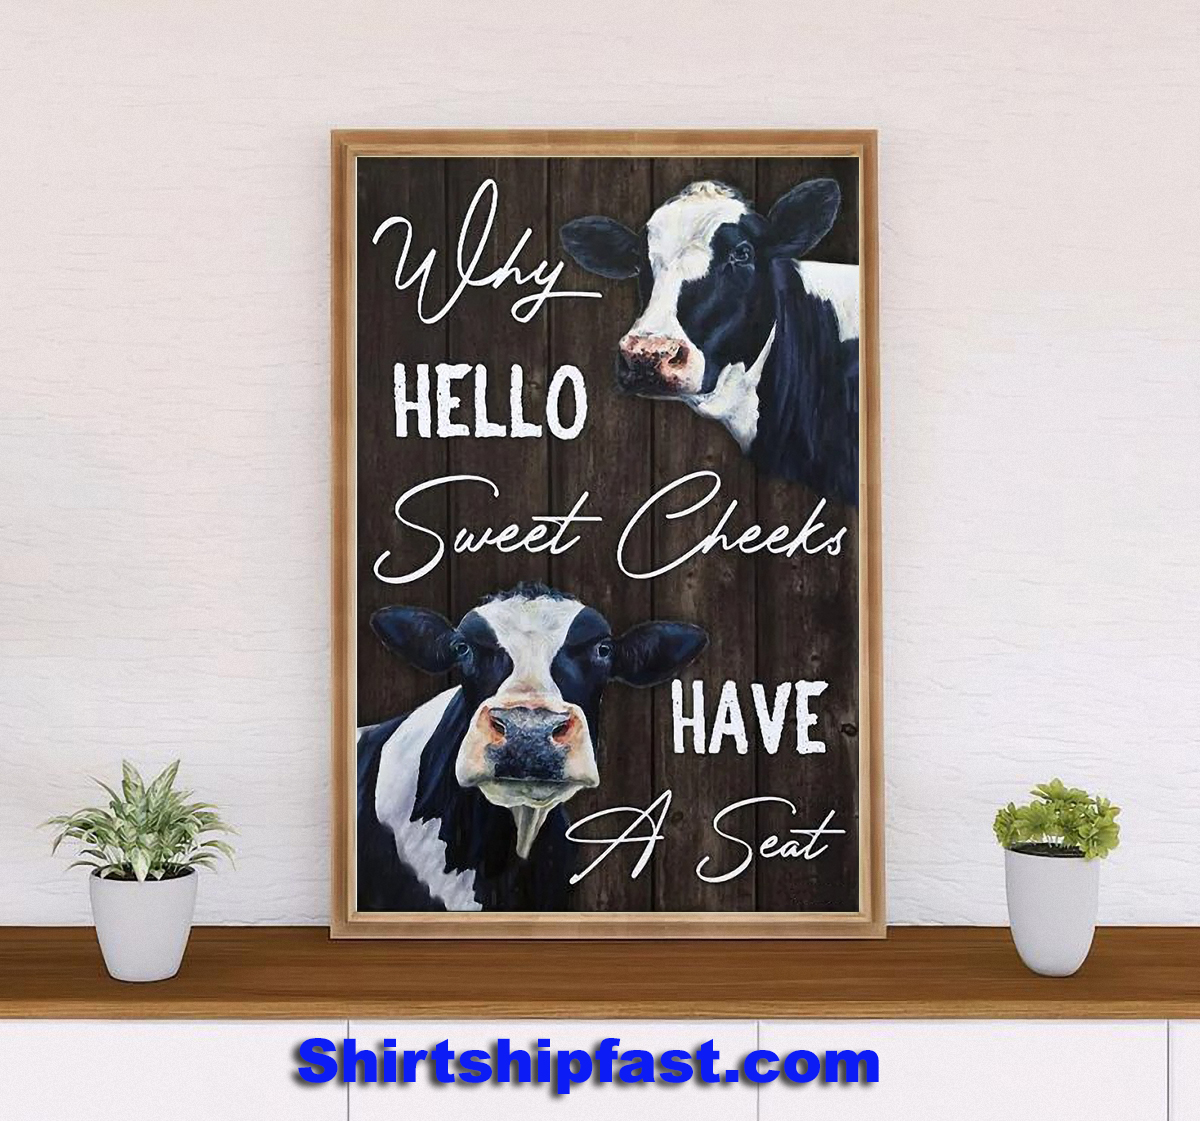 Why hello sweet cheeks have a seat dairy cattle canvas wall art - Picture 2